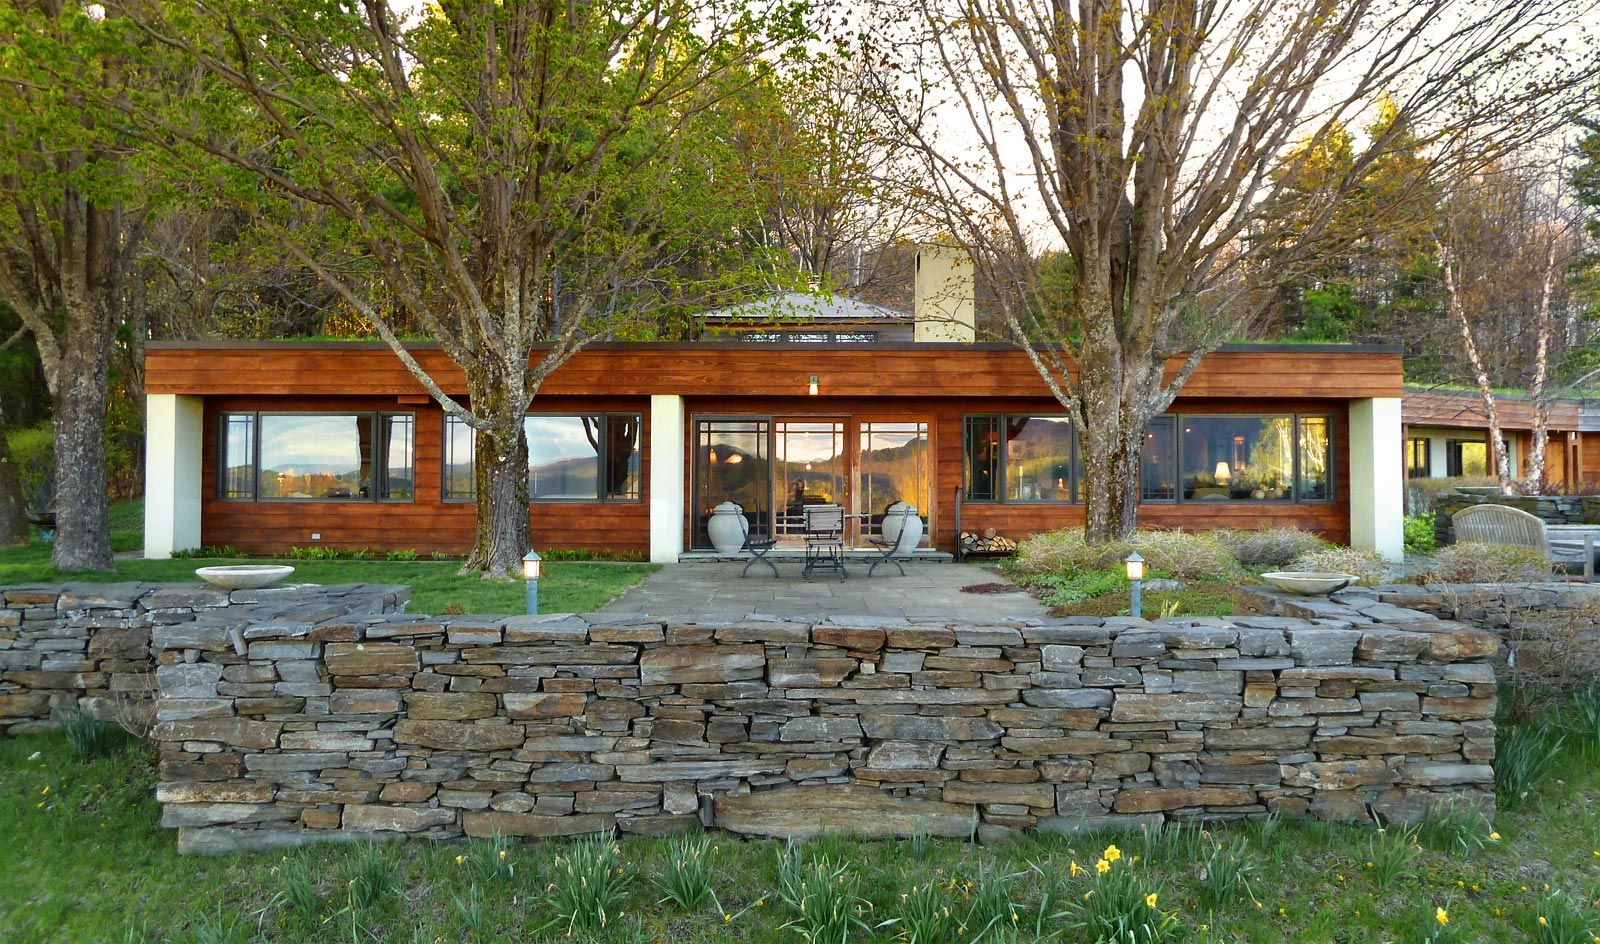 berm home interior. The Pinnacle House an earth  sheltered home in Lyme NH